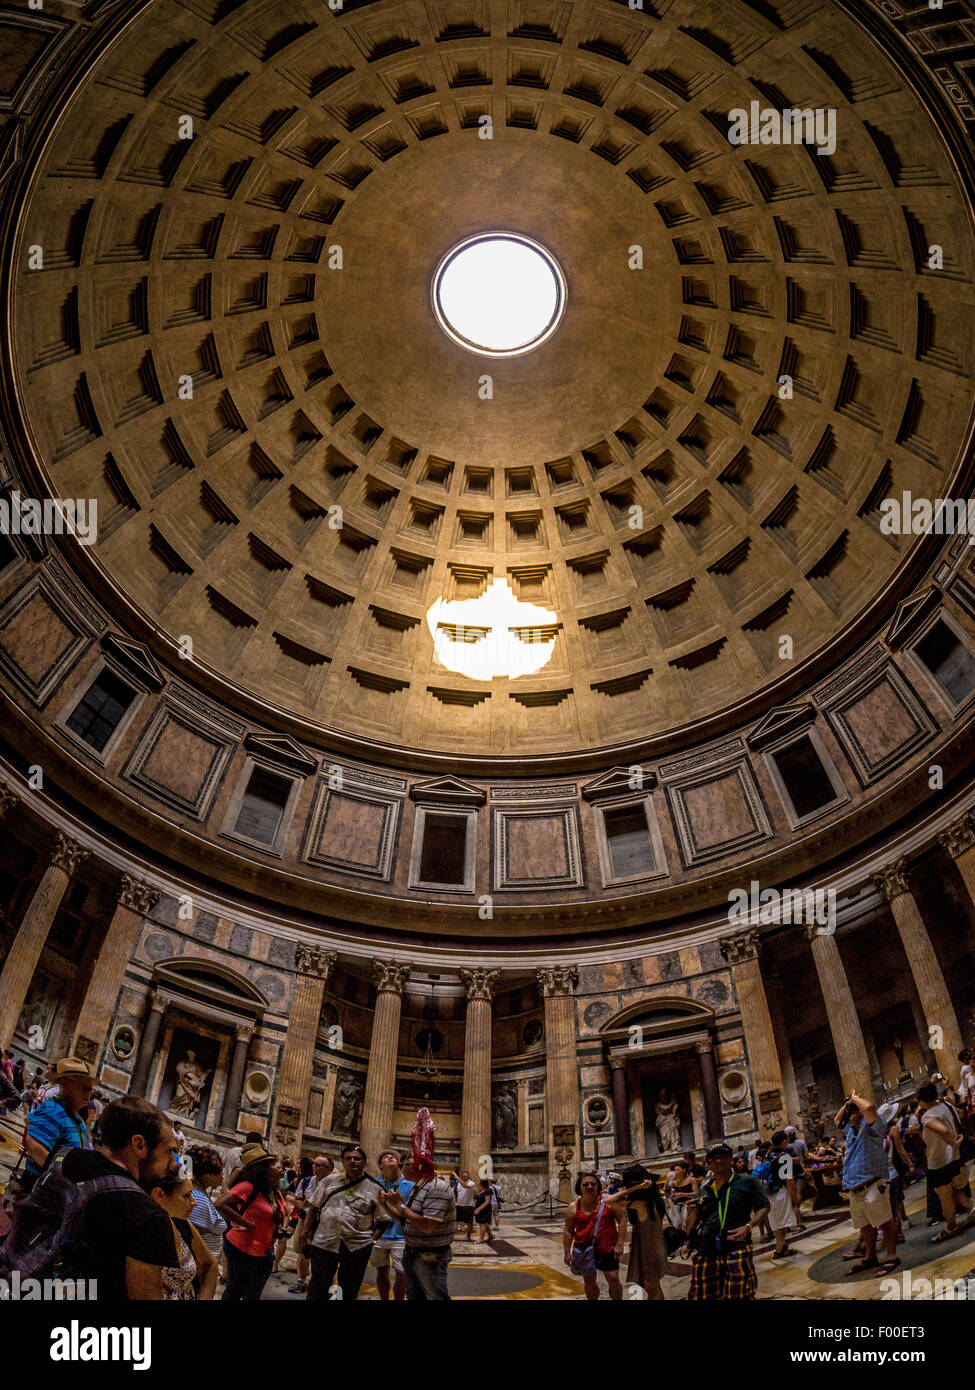 Fisheye Lens Shot Of Oculus And Interior Of The Pantheon